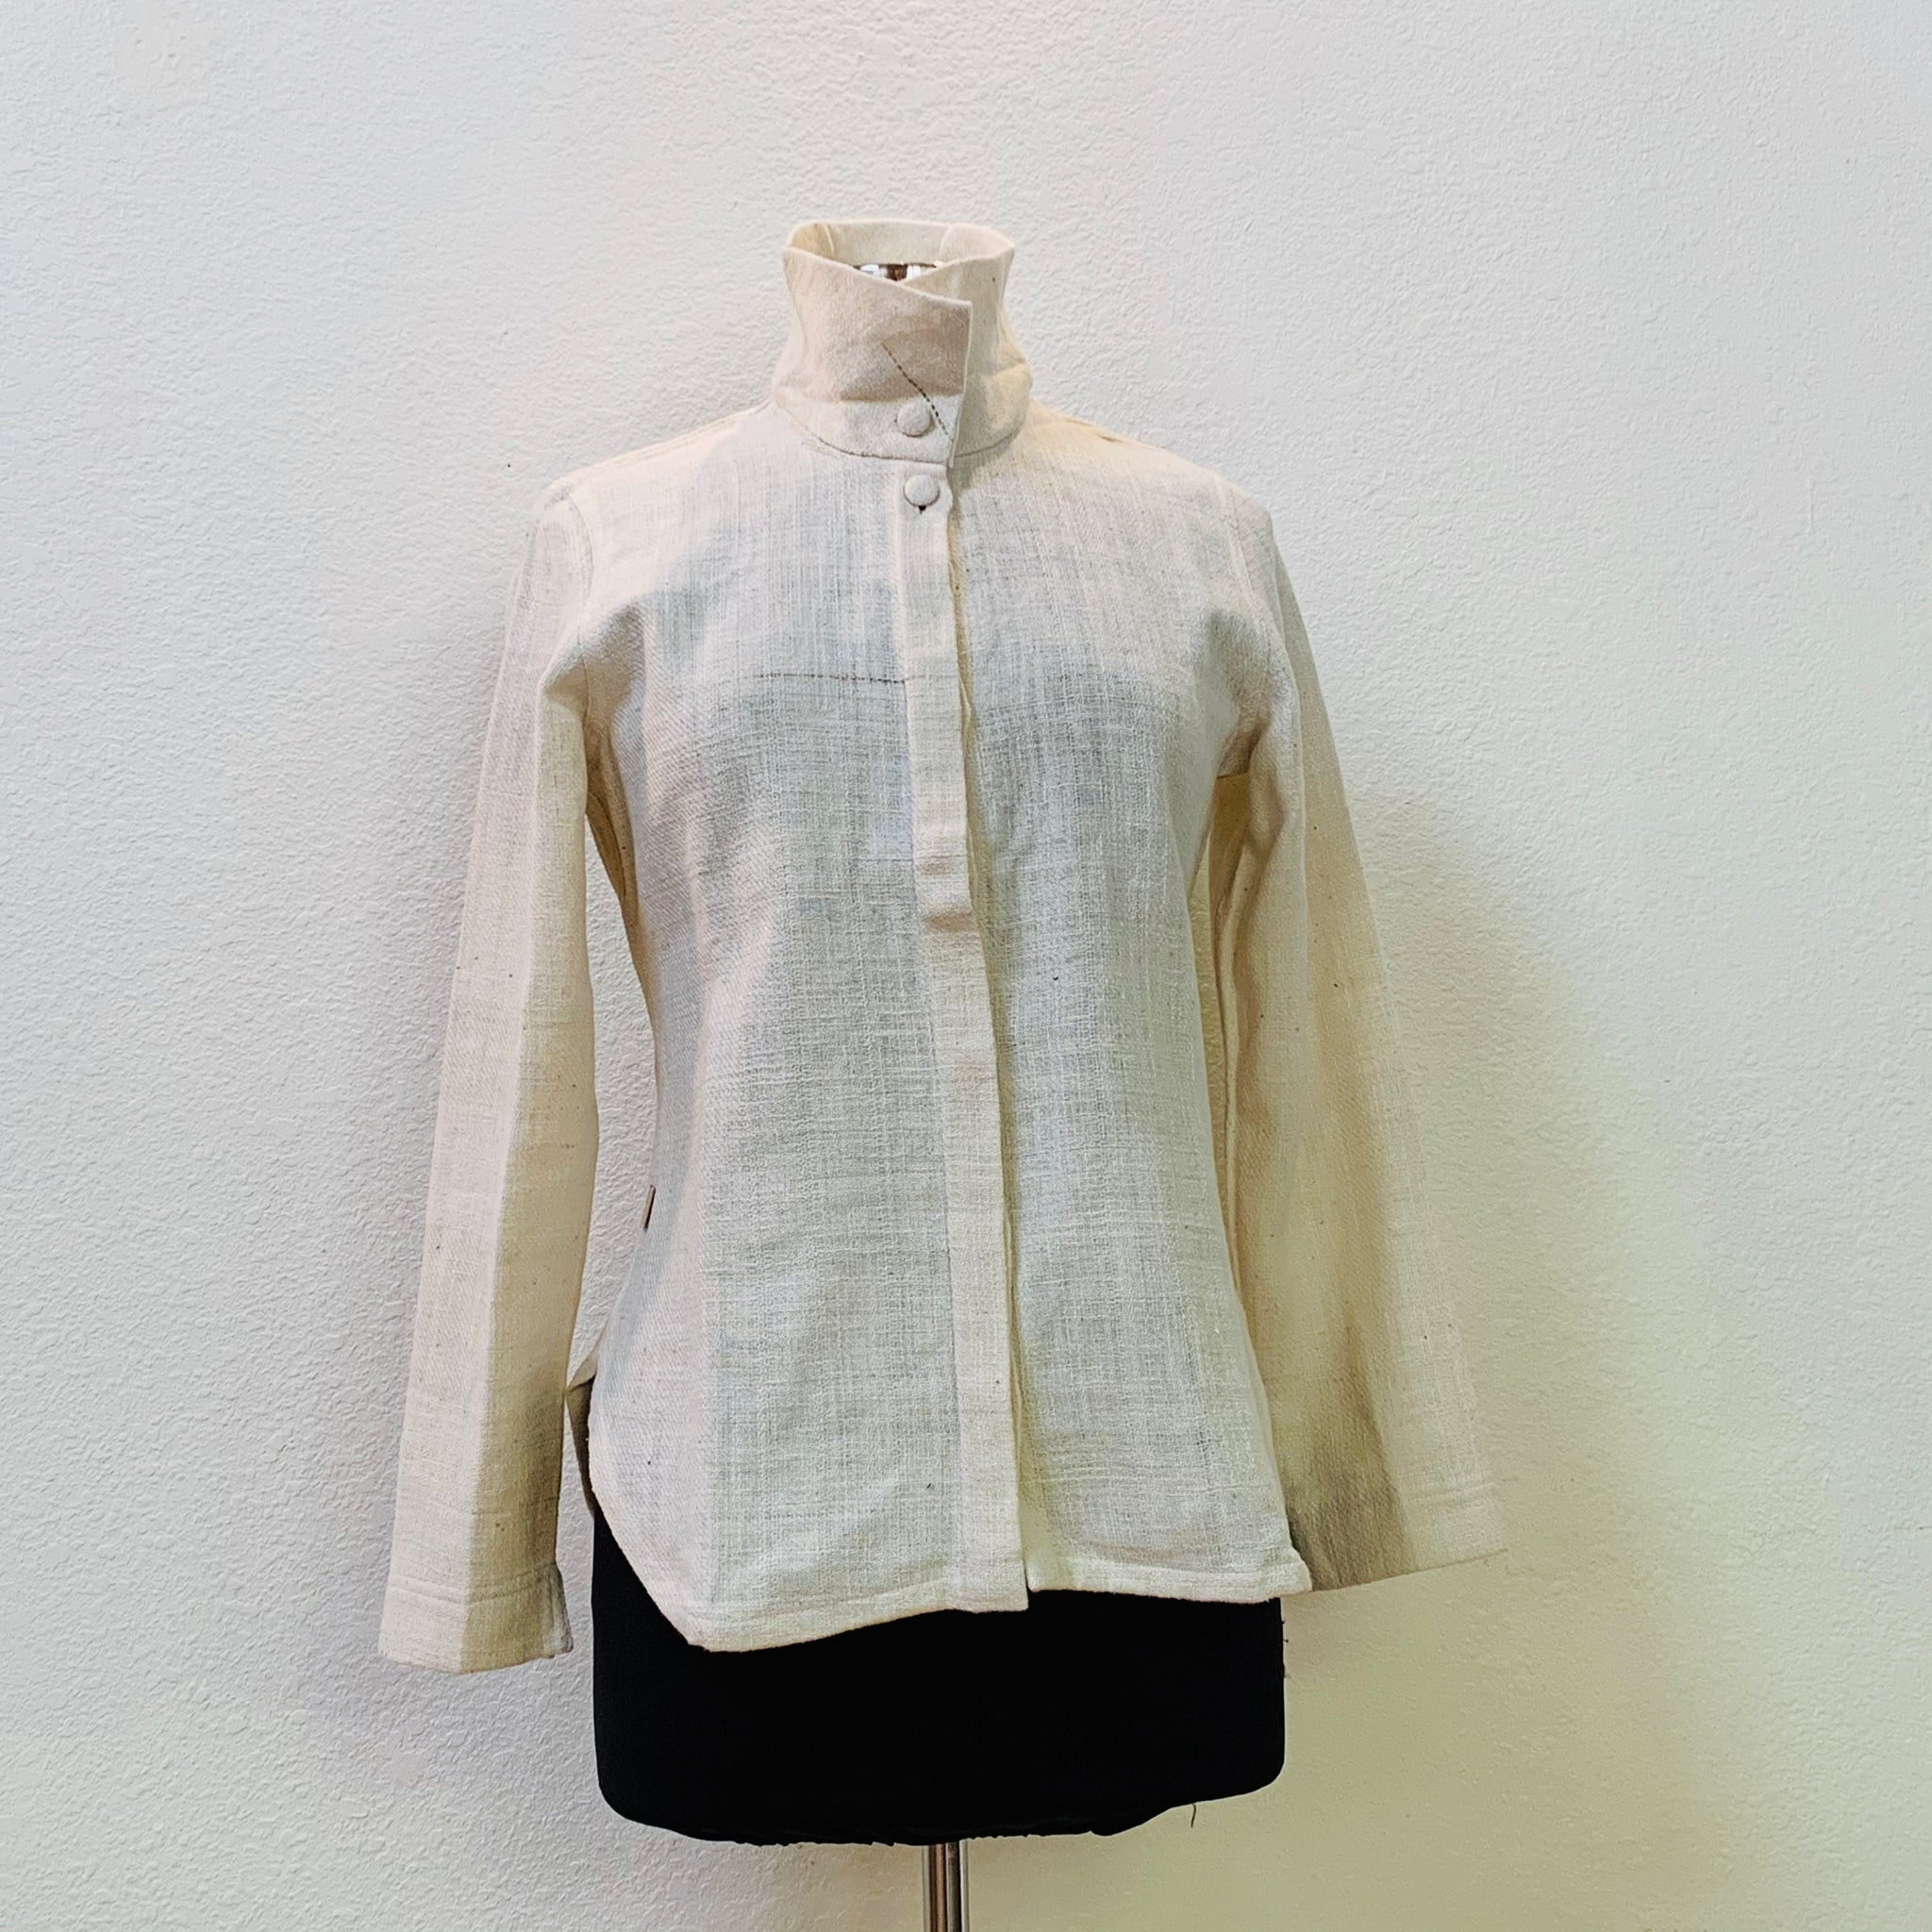 Long Sleeve Shirt / Blouse / Jacket 2164Q 4A - Size 4 - Natural White